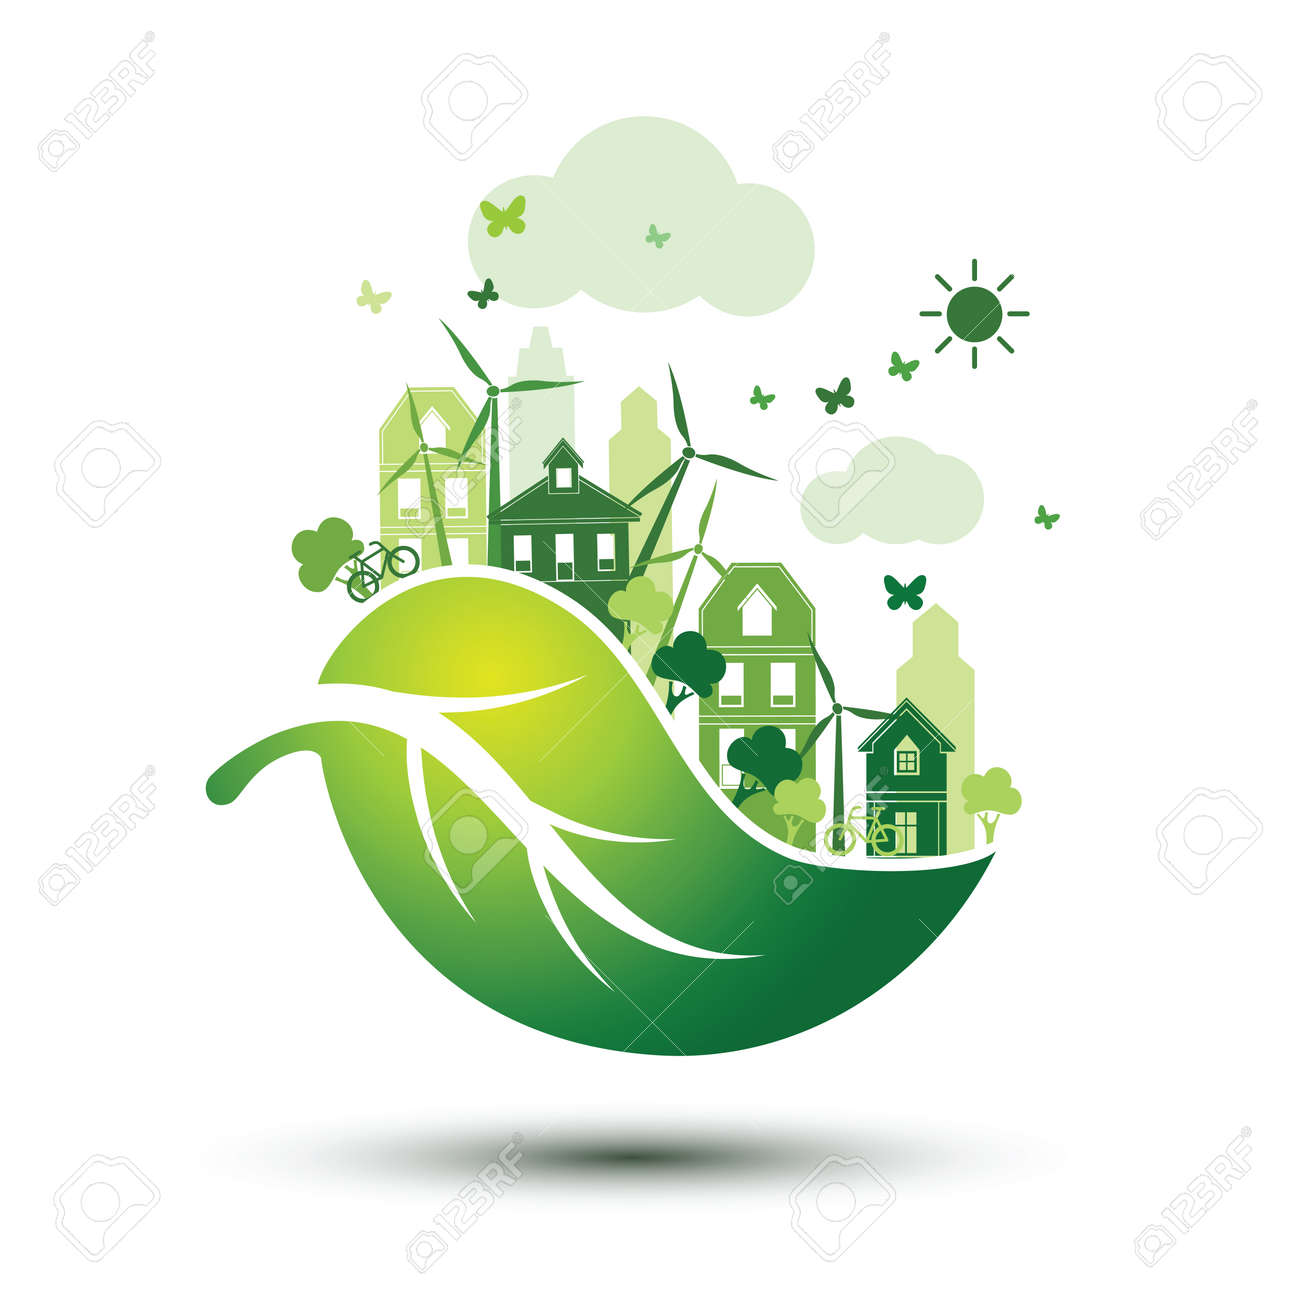 green city with green Eco leaves concept ,illustration Stock Vector - 51549139